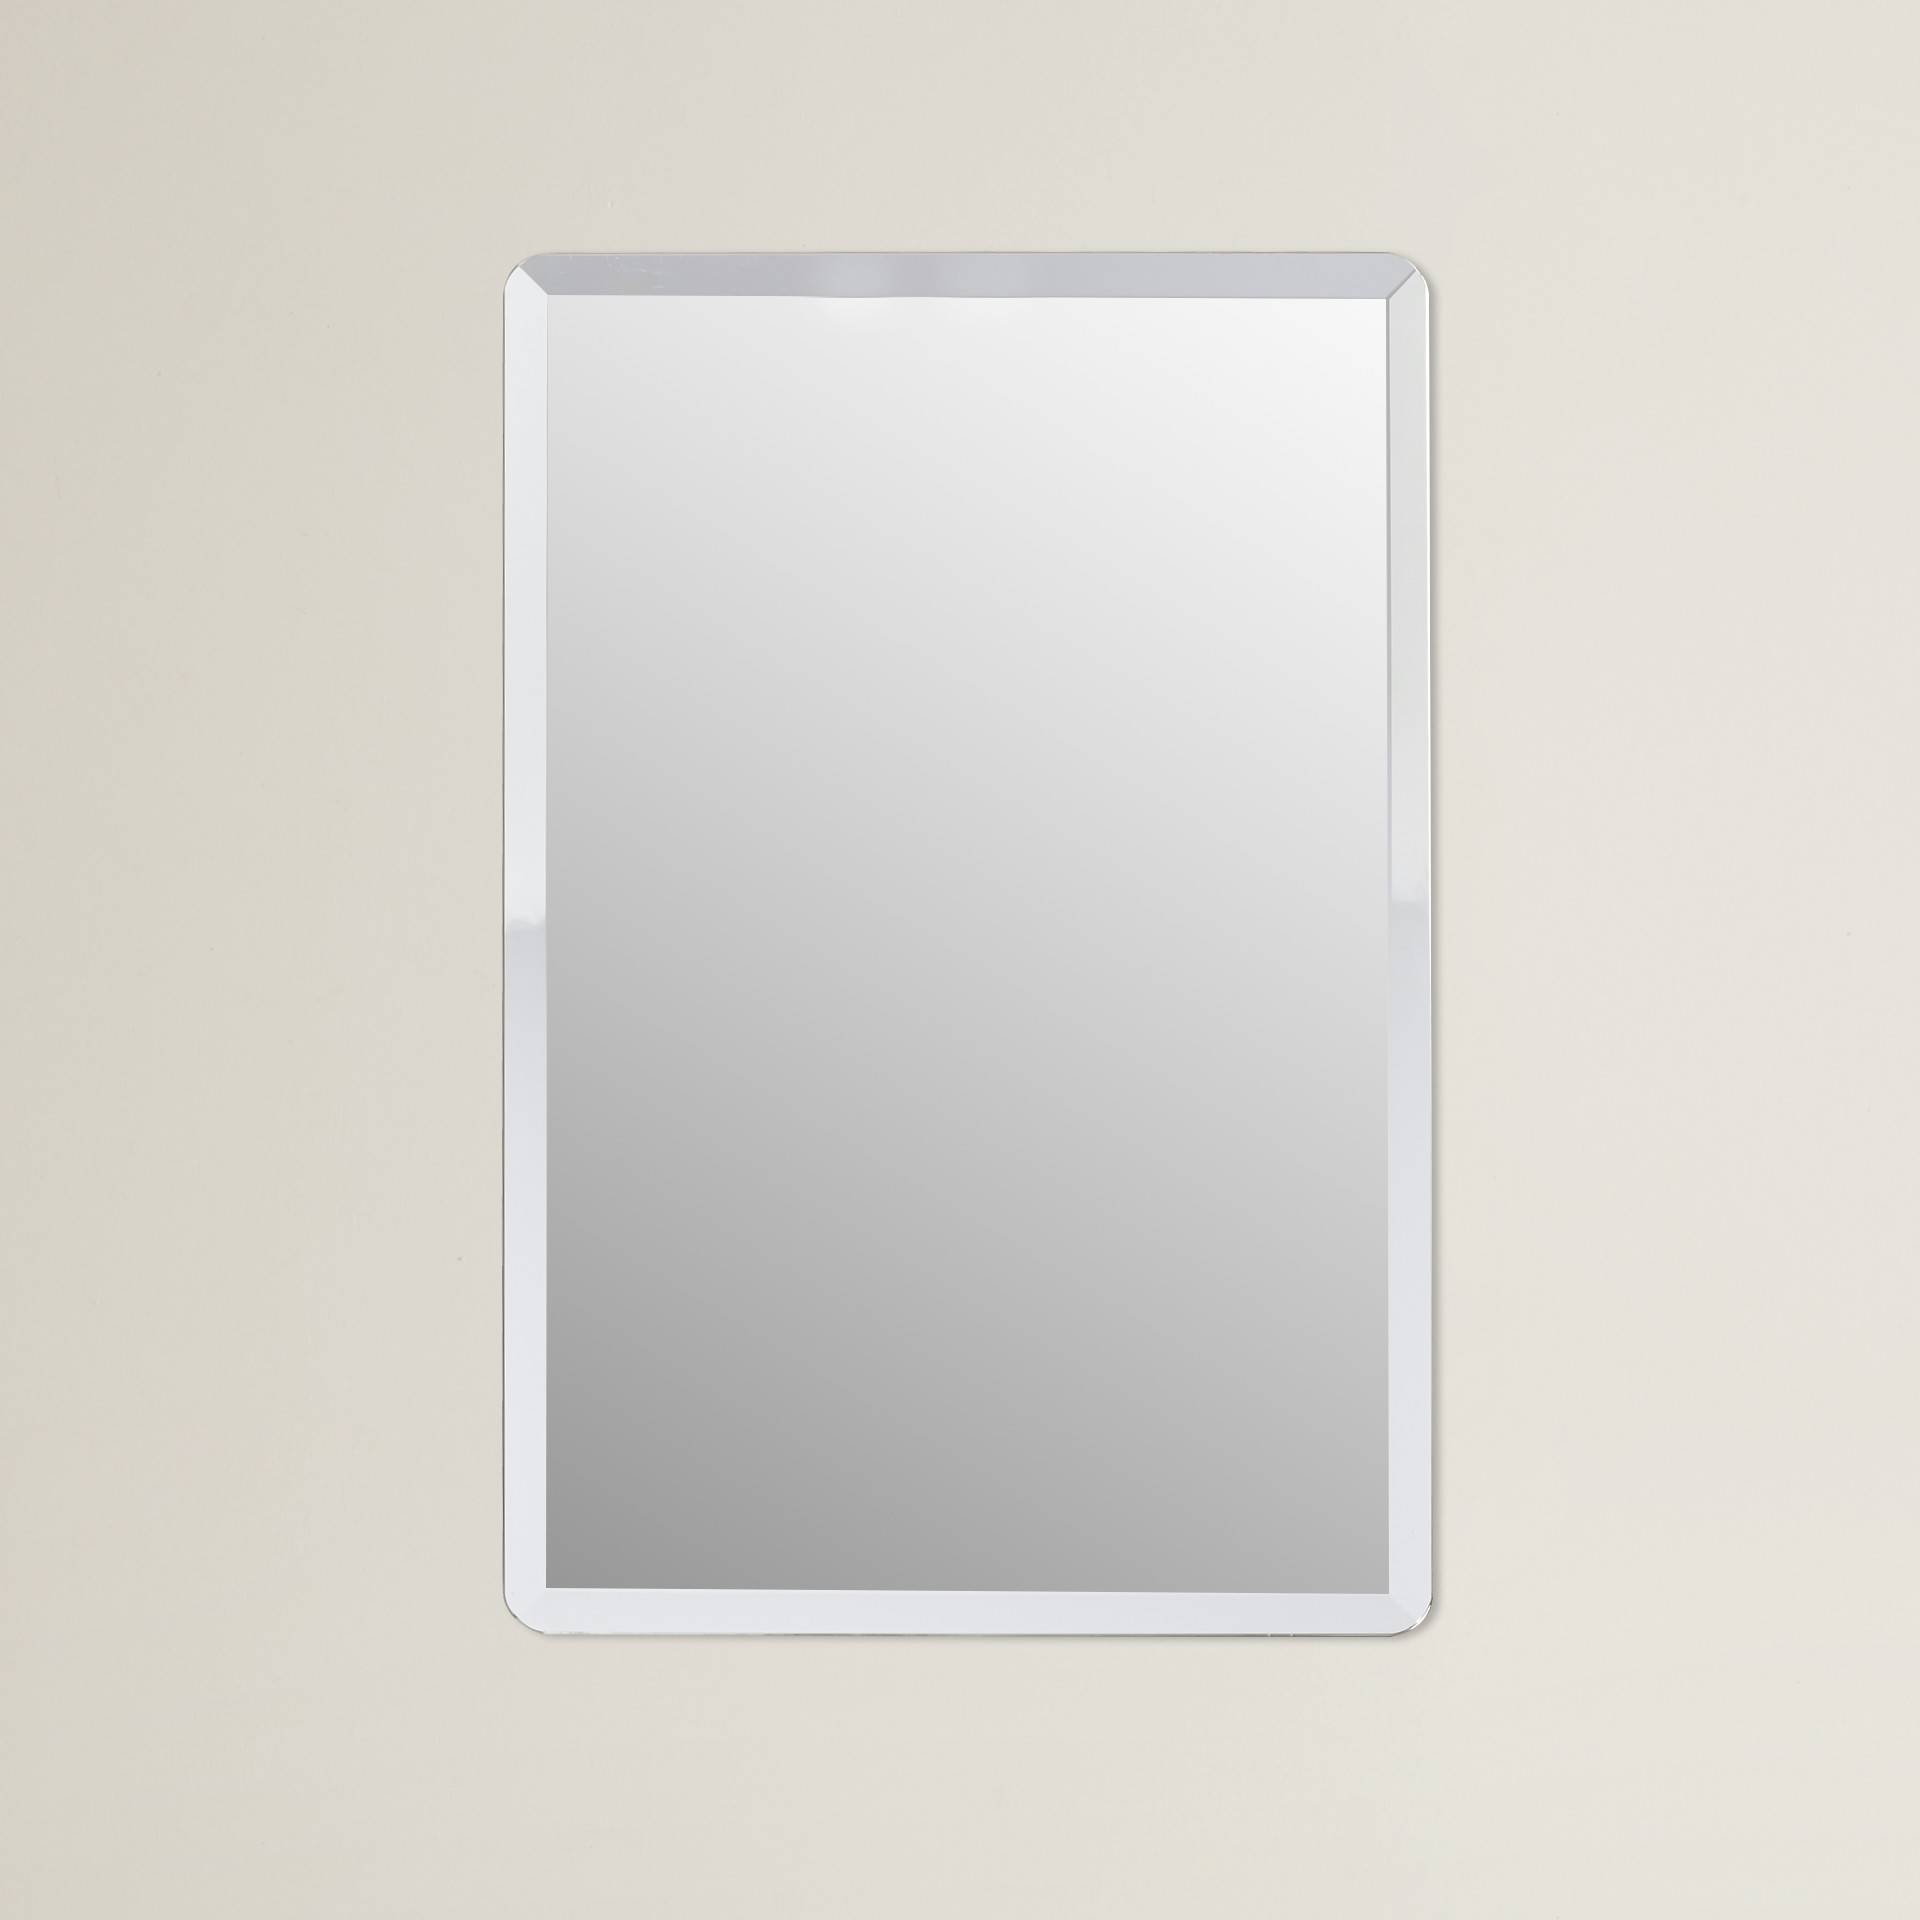 Bathroom: Light Up Your Home With Frameless Beveled Mirror Pertaining To Square Frameless Mirrors (View 4 of 15)